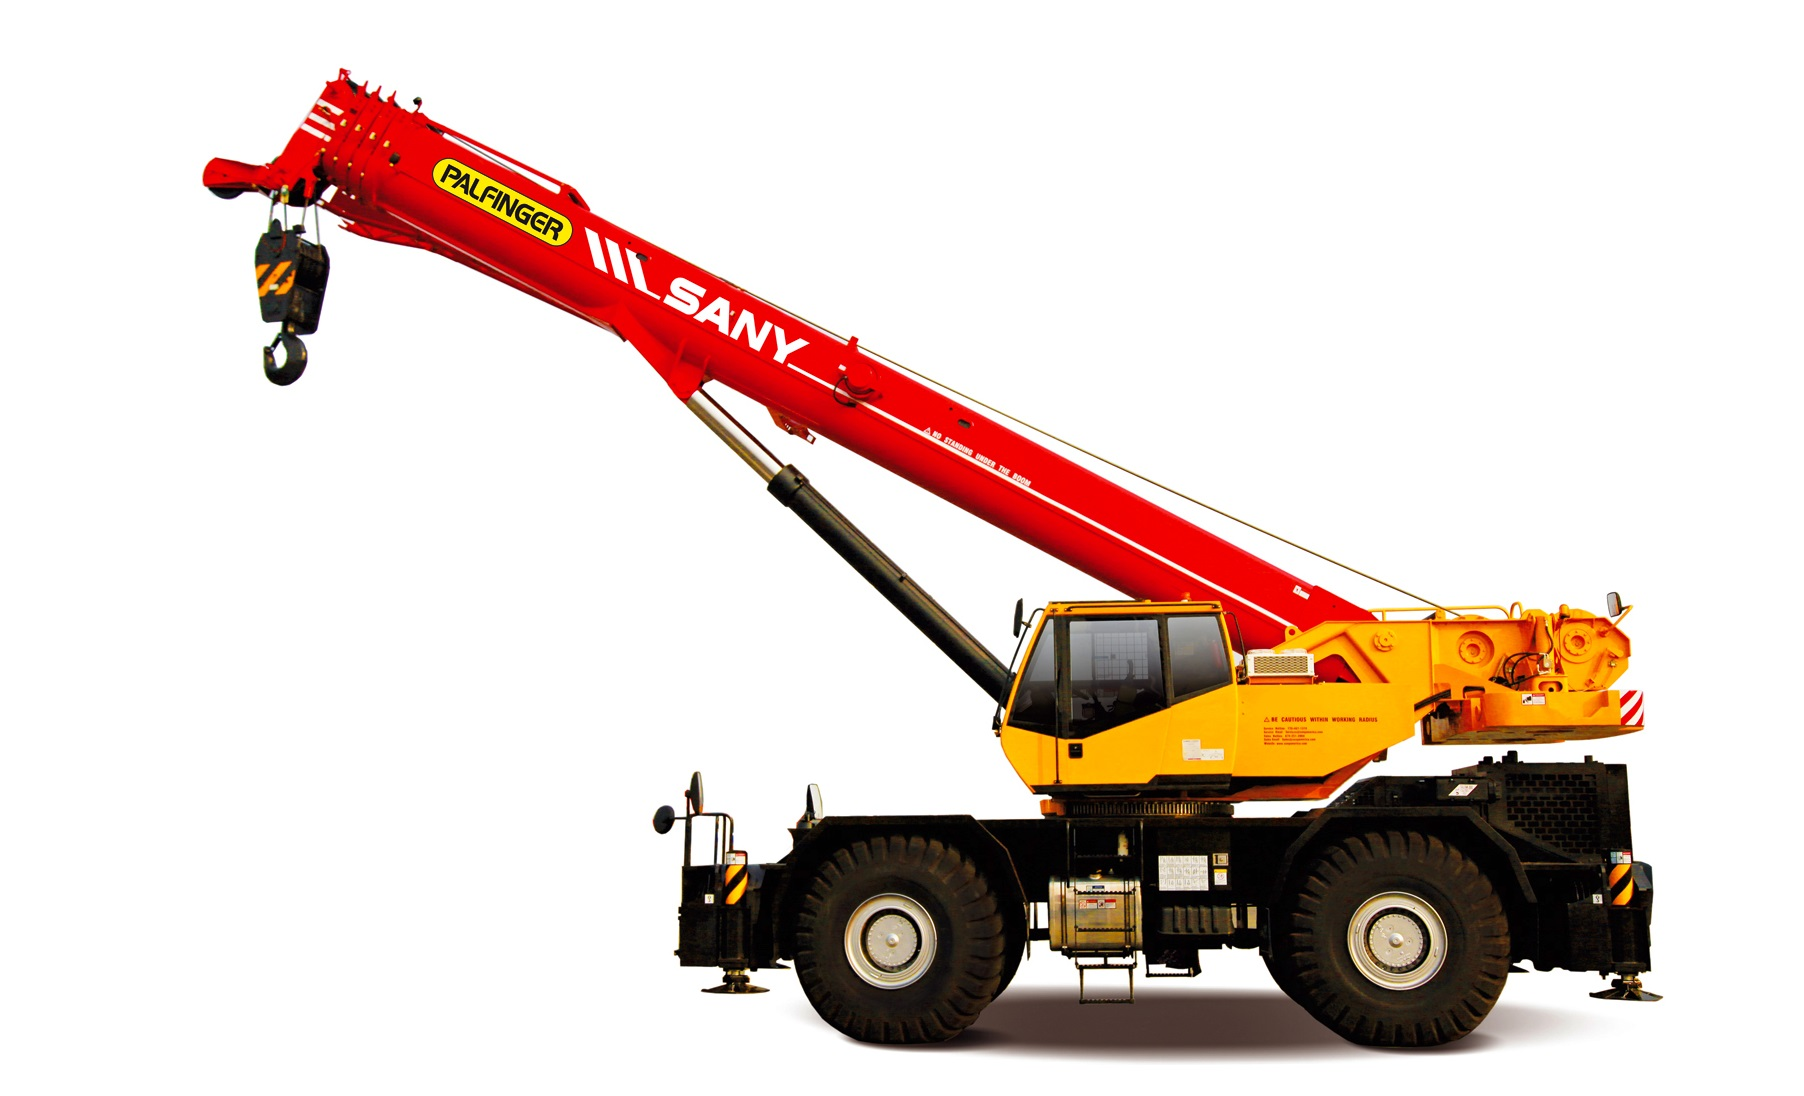 palfinger_sany_rough_terrain_crane_lifting_src750c_BIG